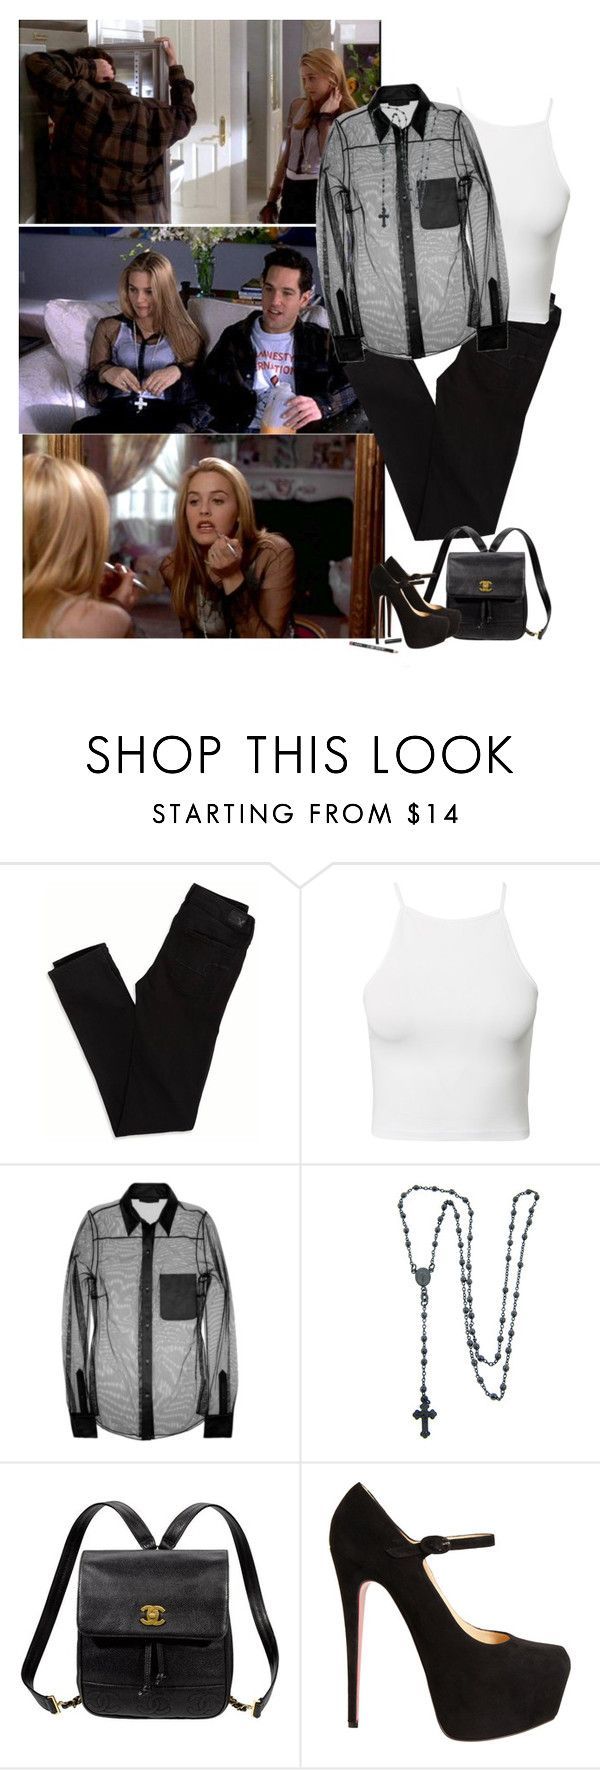 """Clueless Cher black outfit"" by priscilla12 ❤ liked on Polyvore featuring SilverStone, American Eagle Outfitters, Estradeur, Alexander Wang, Eternally Haute, Kate Spade, Christian Louboutin, NYX, movie and Cher"